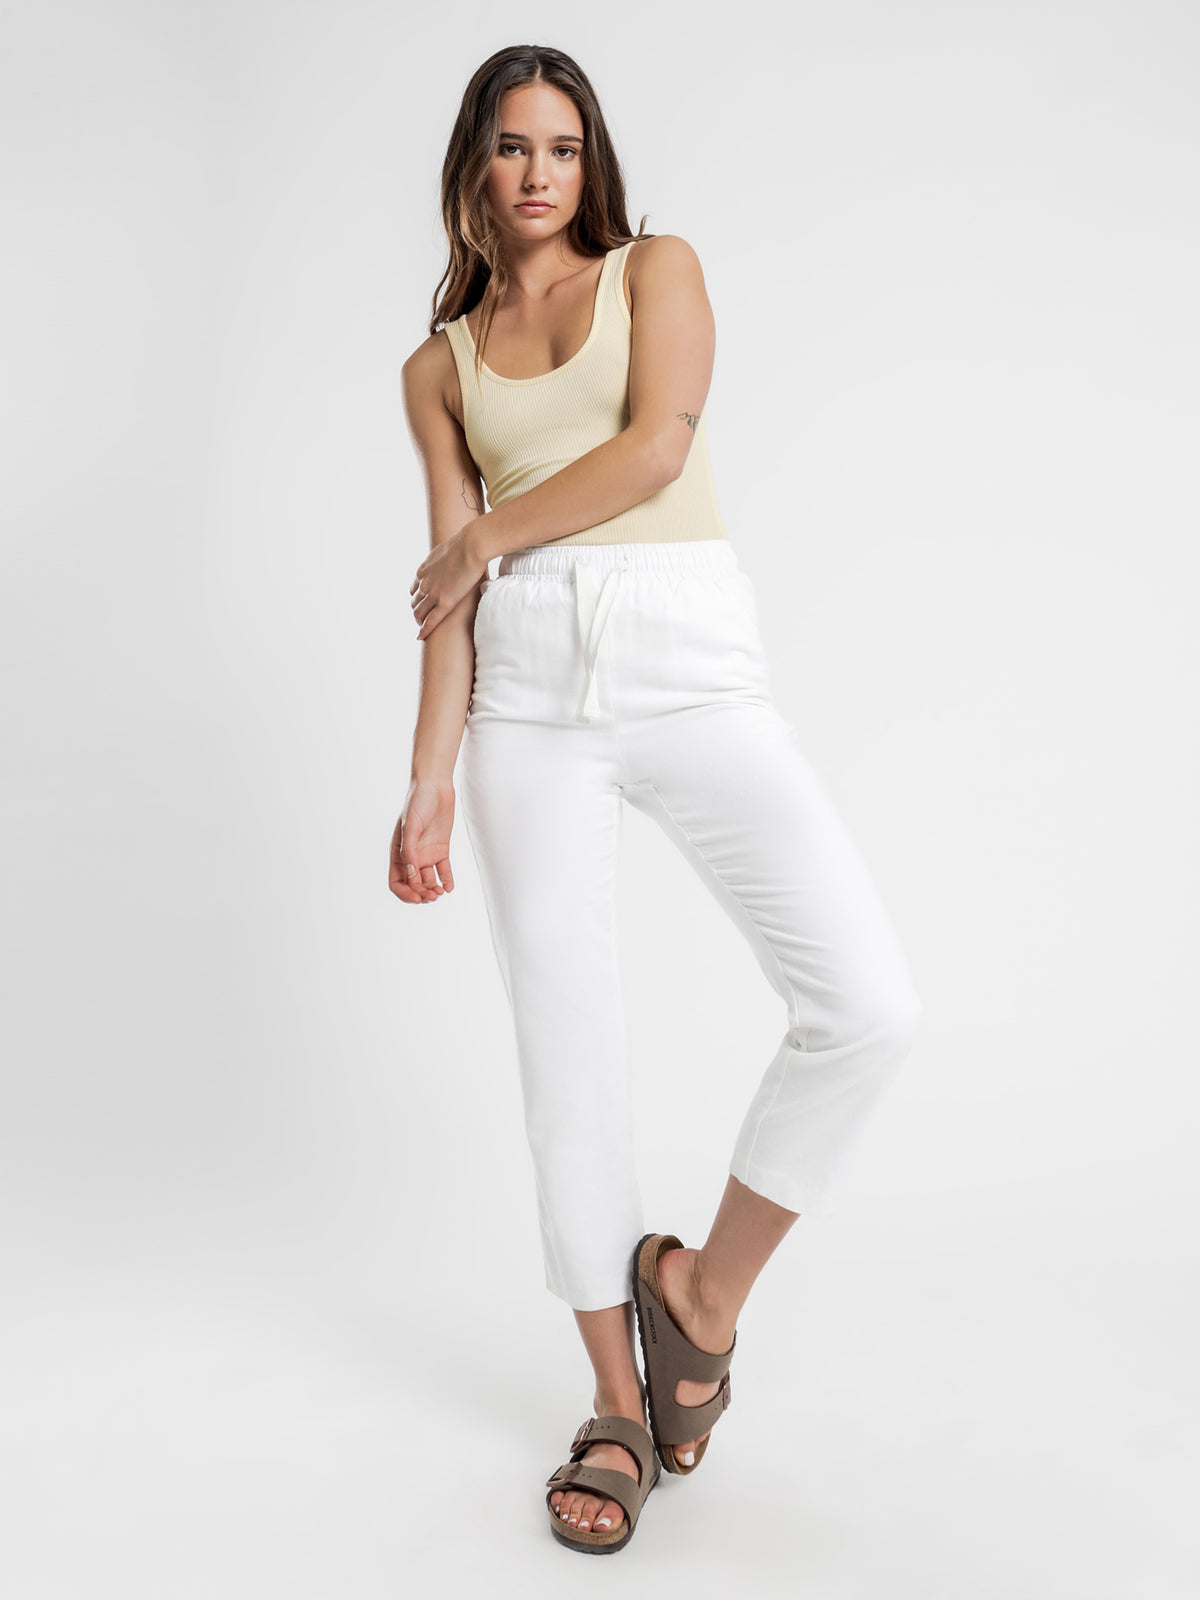 Maya Long Line Rib Tank in Butter